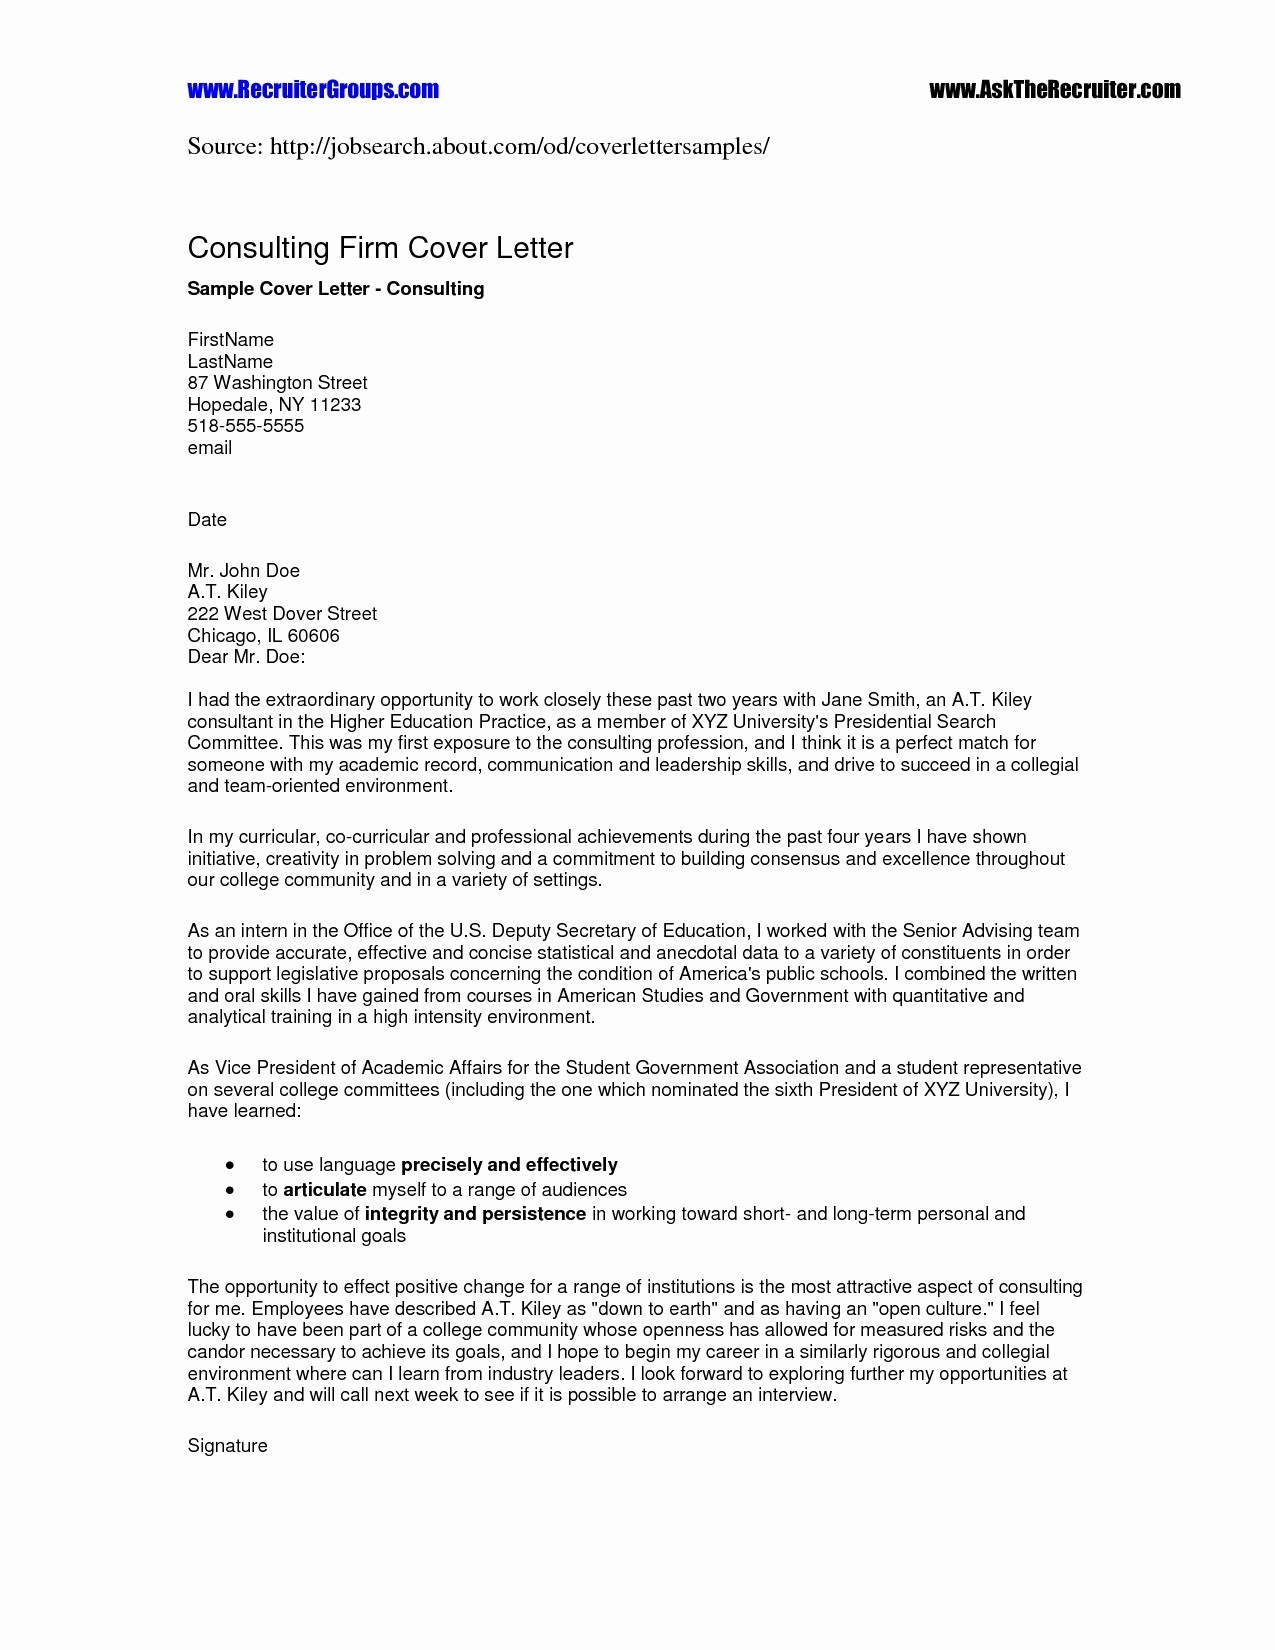 Bad News Letter Template - Basic Resume Cover Letter Template New Simple Resume Cover Letters